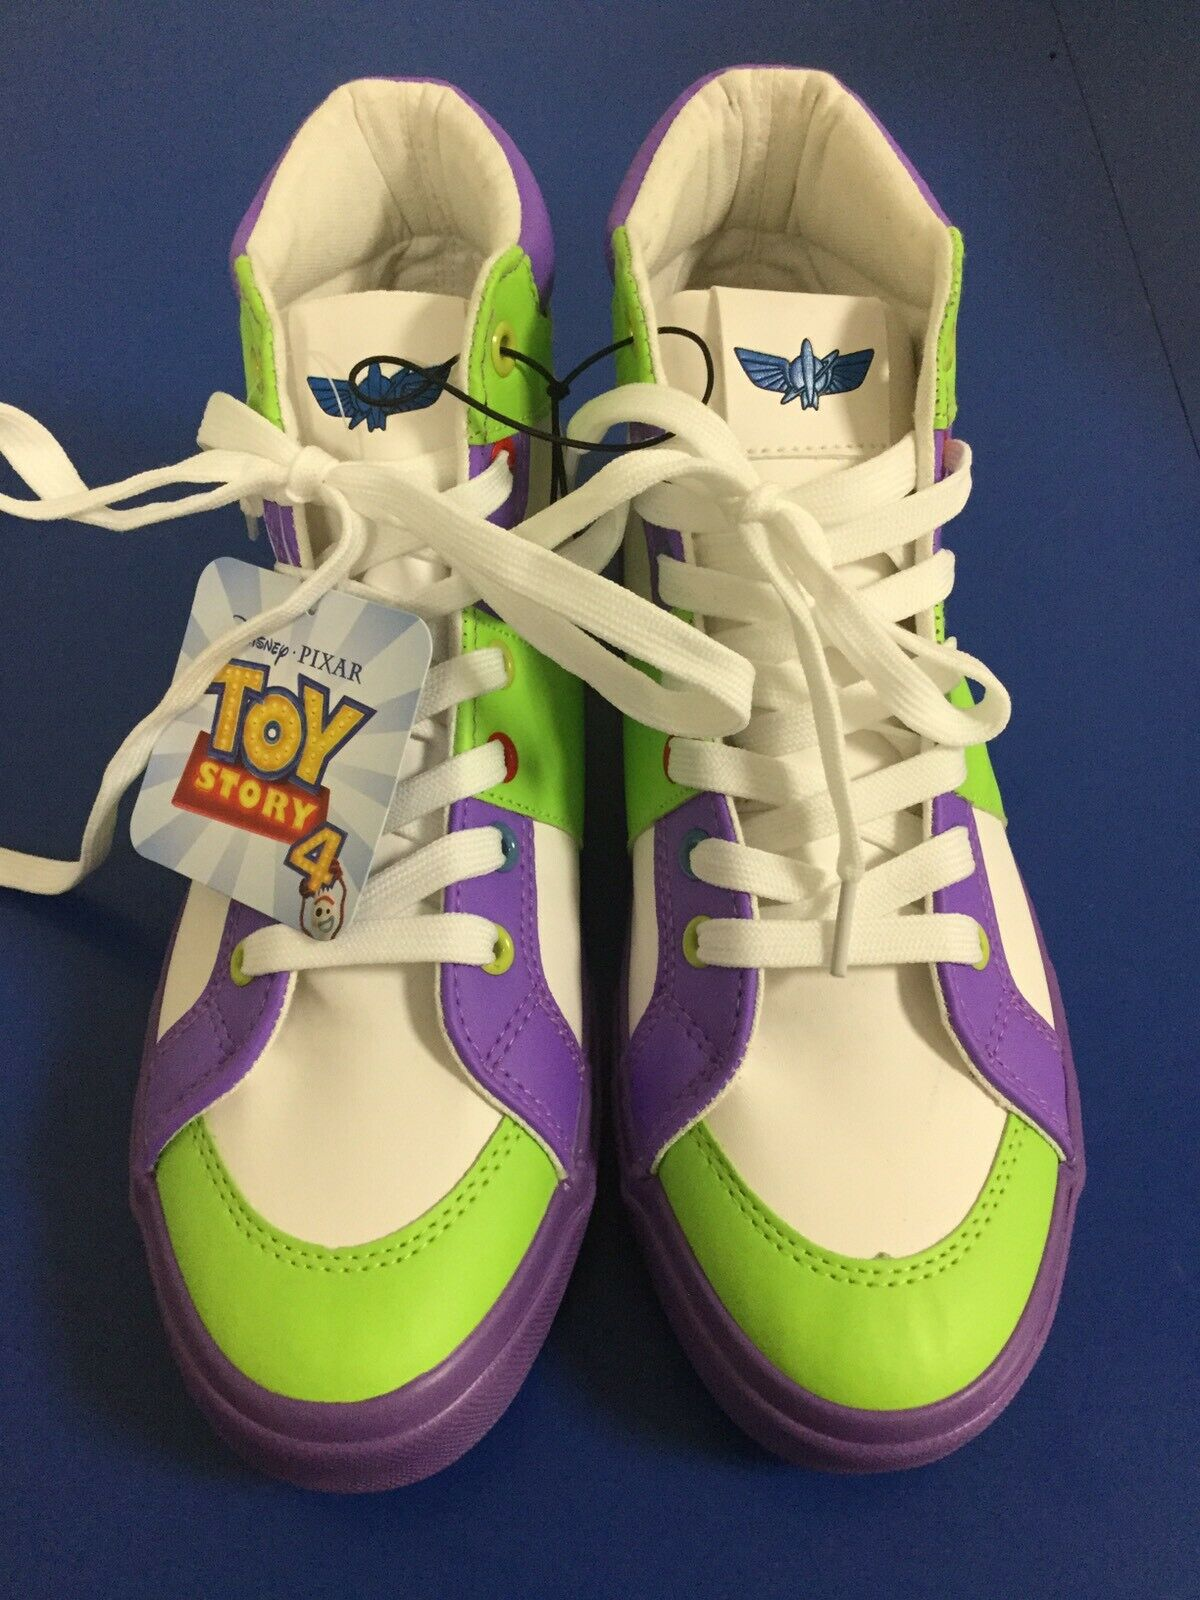 Toy Story 4 BUZZ LIGHTYEAR High Top Sneakers. Brand New. Adult Size 7.